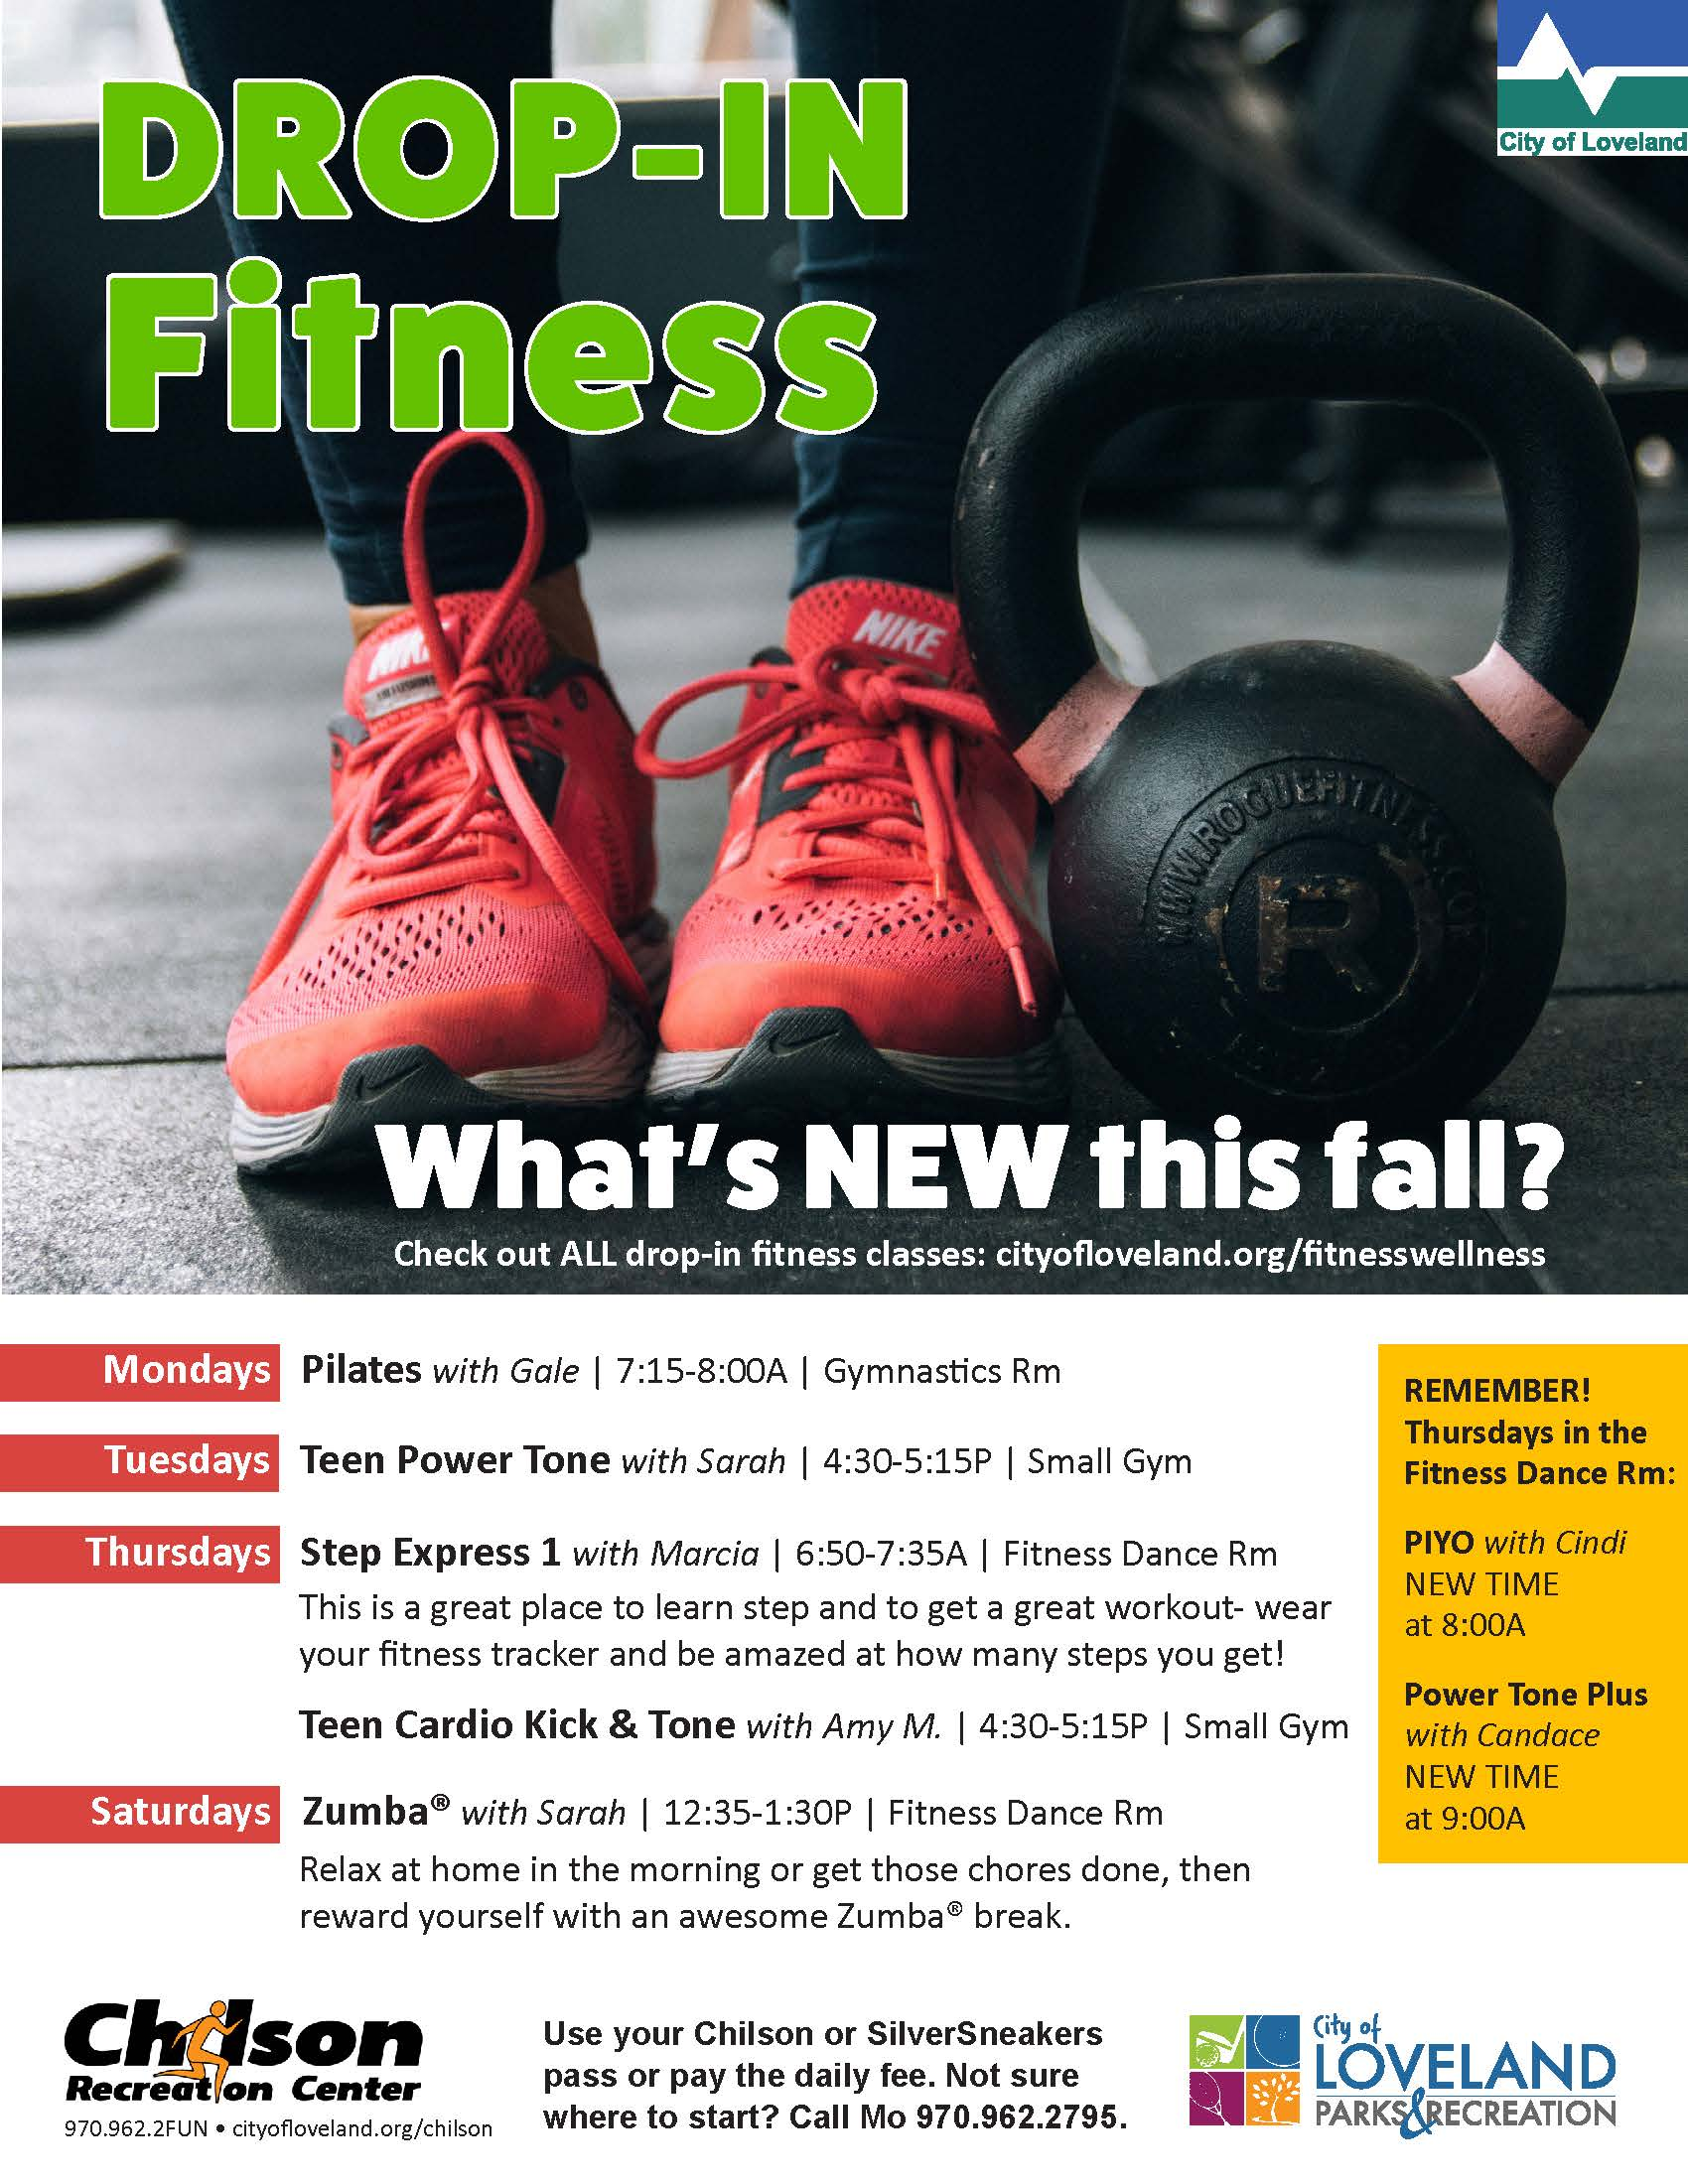 New drop-in classes this fall at Chilson Rec Center